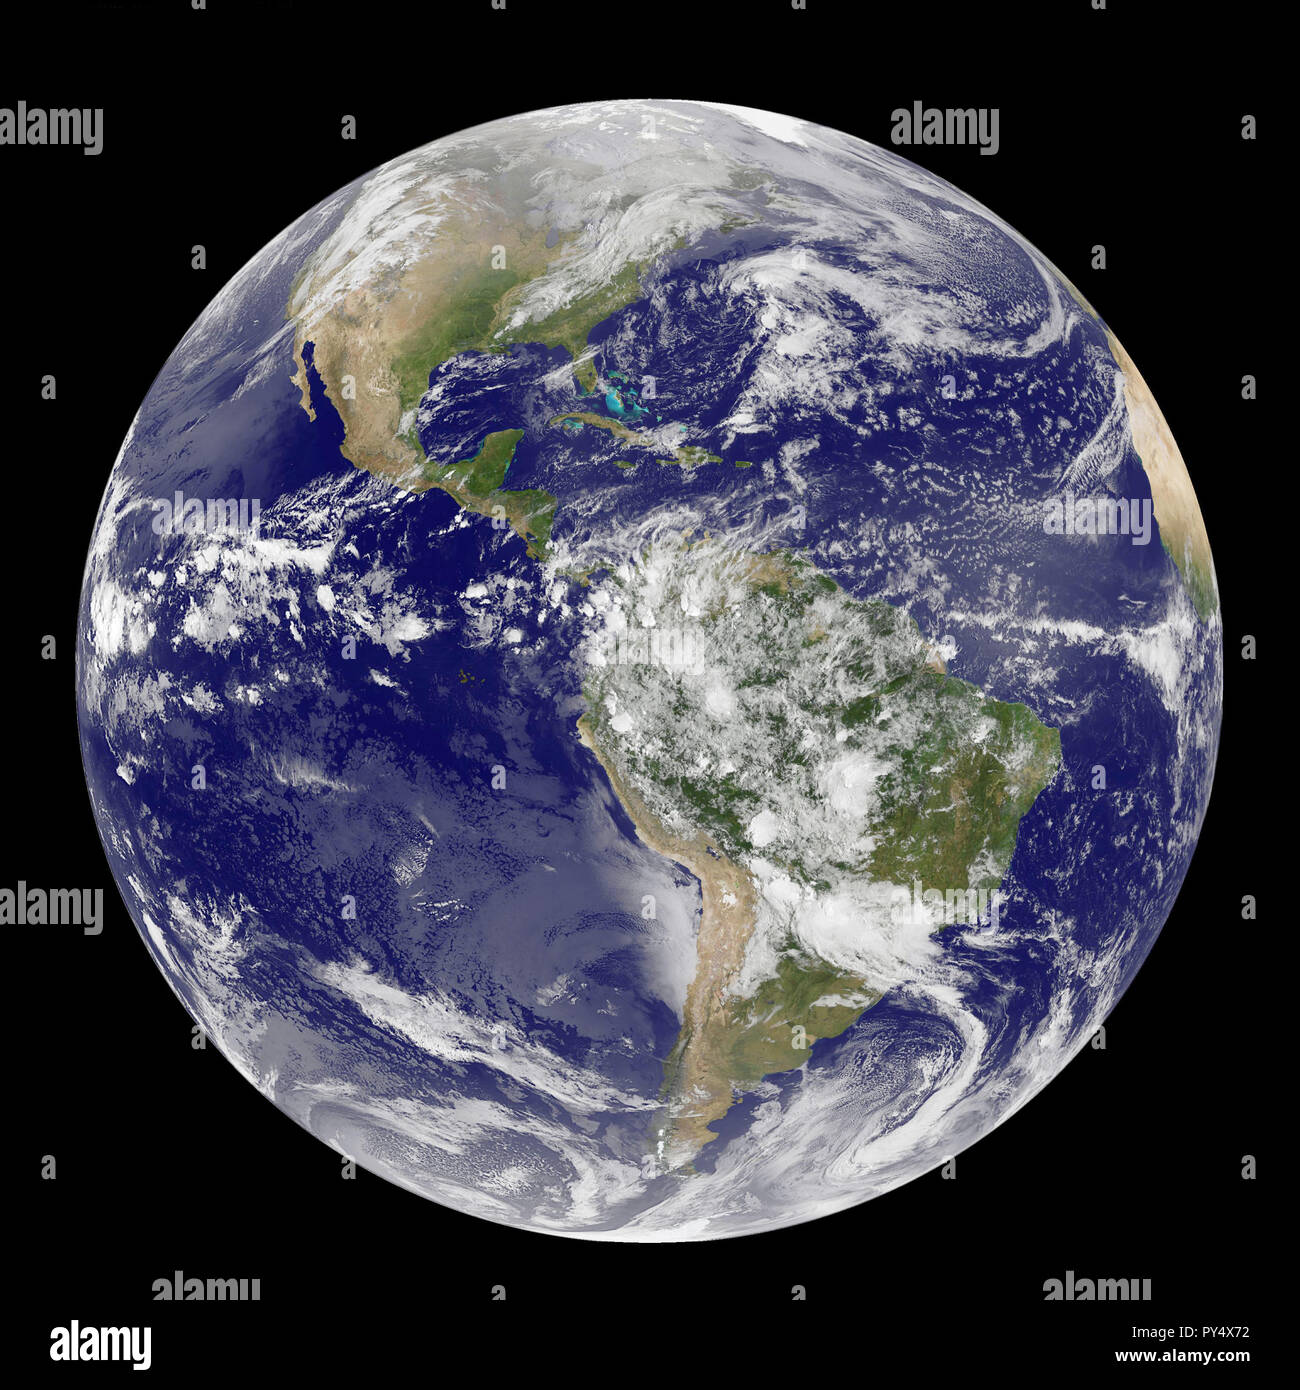 Satellite View of the Americas on Earth Day.jpg - PY4X72  - Stock Image